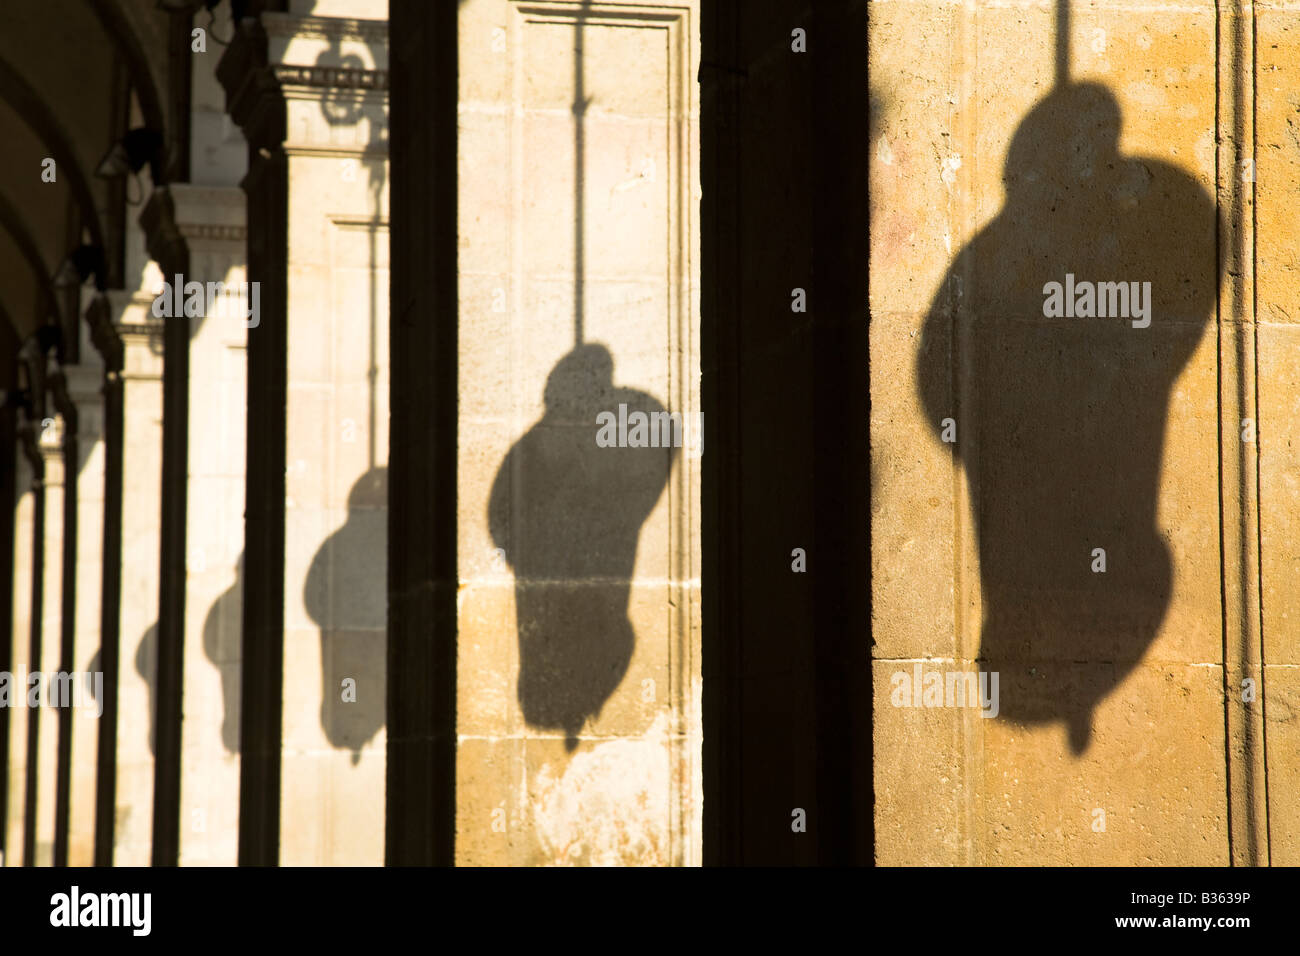 SPAIN Barcelona Repeating shadows of hanging lamps on columns in Placa Reial Neoclassical square plaza - Stock Image